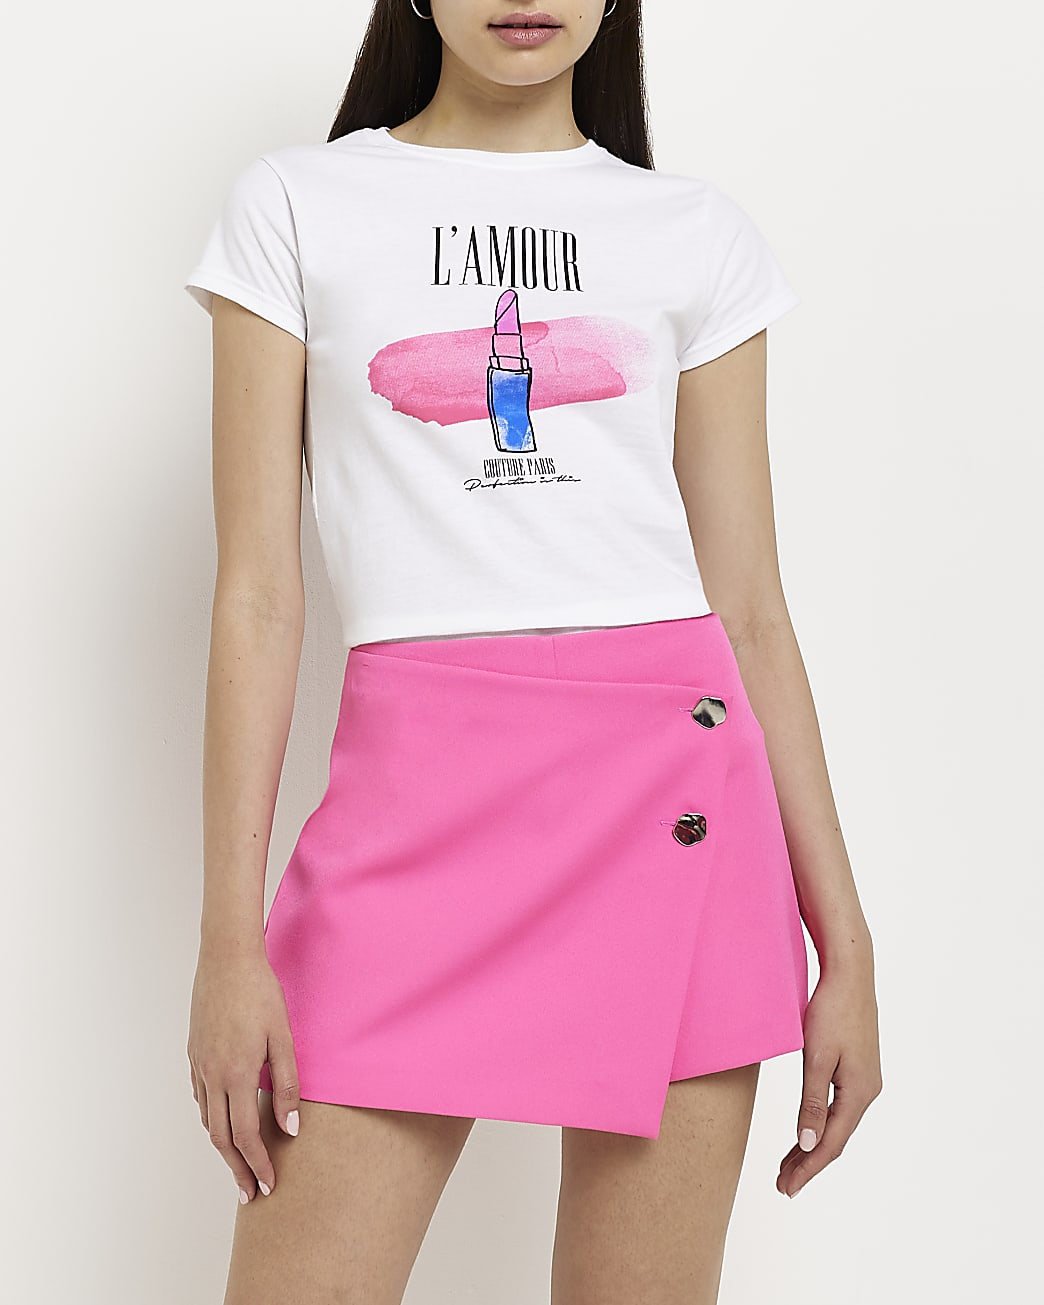 Black quilted tote bag and bottle carrier